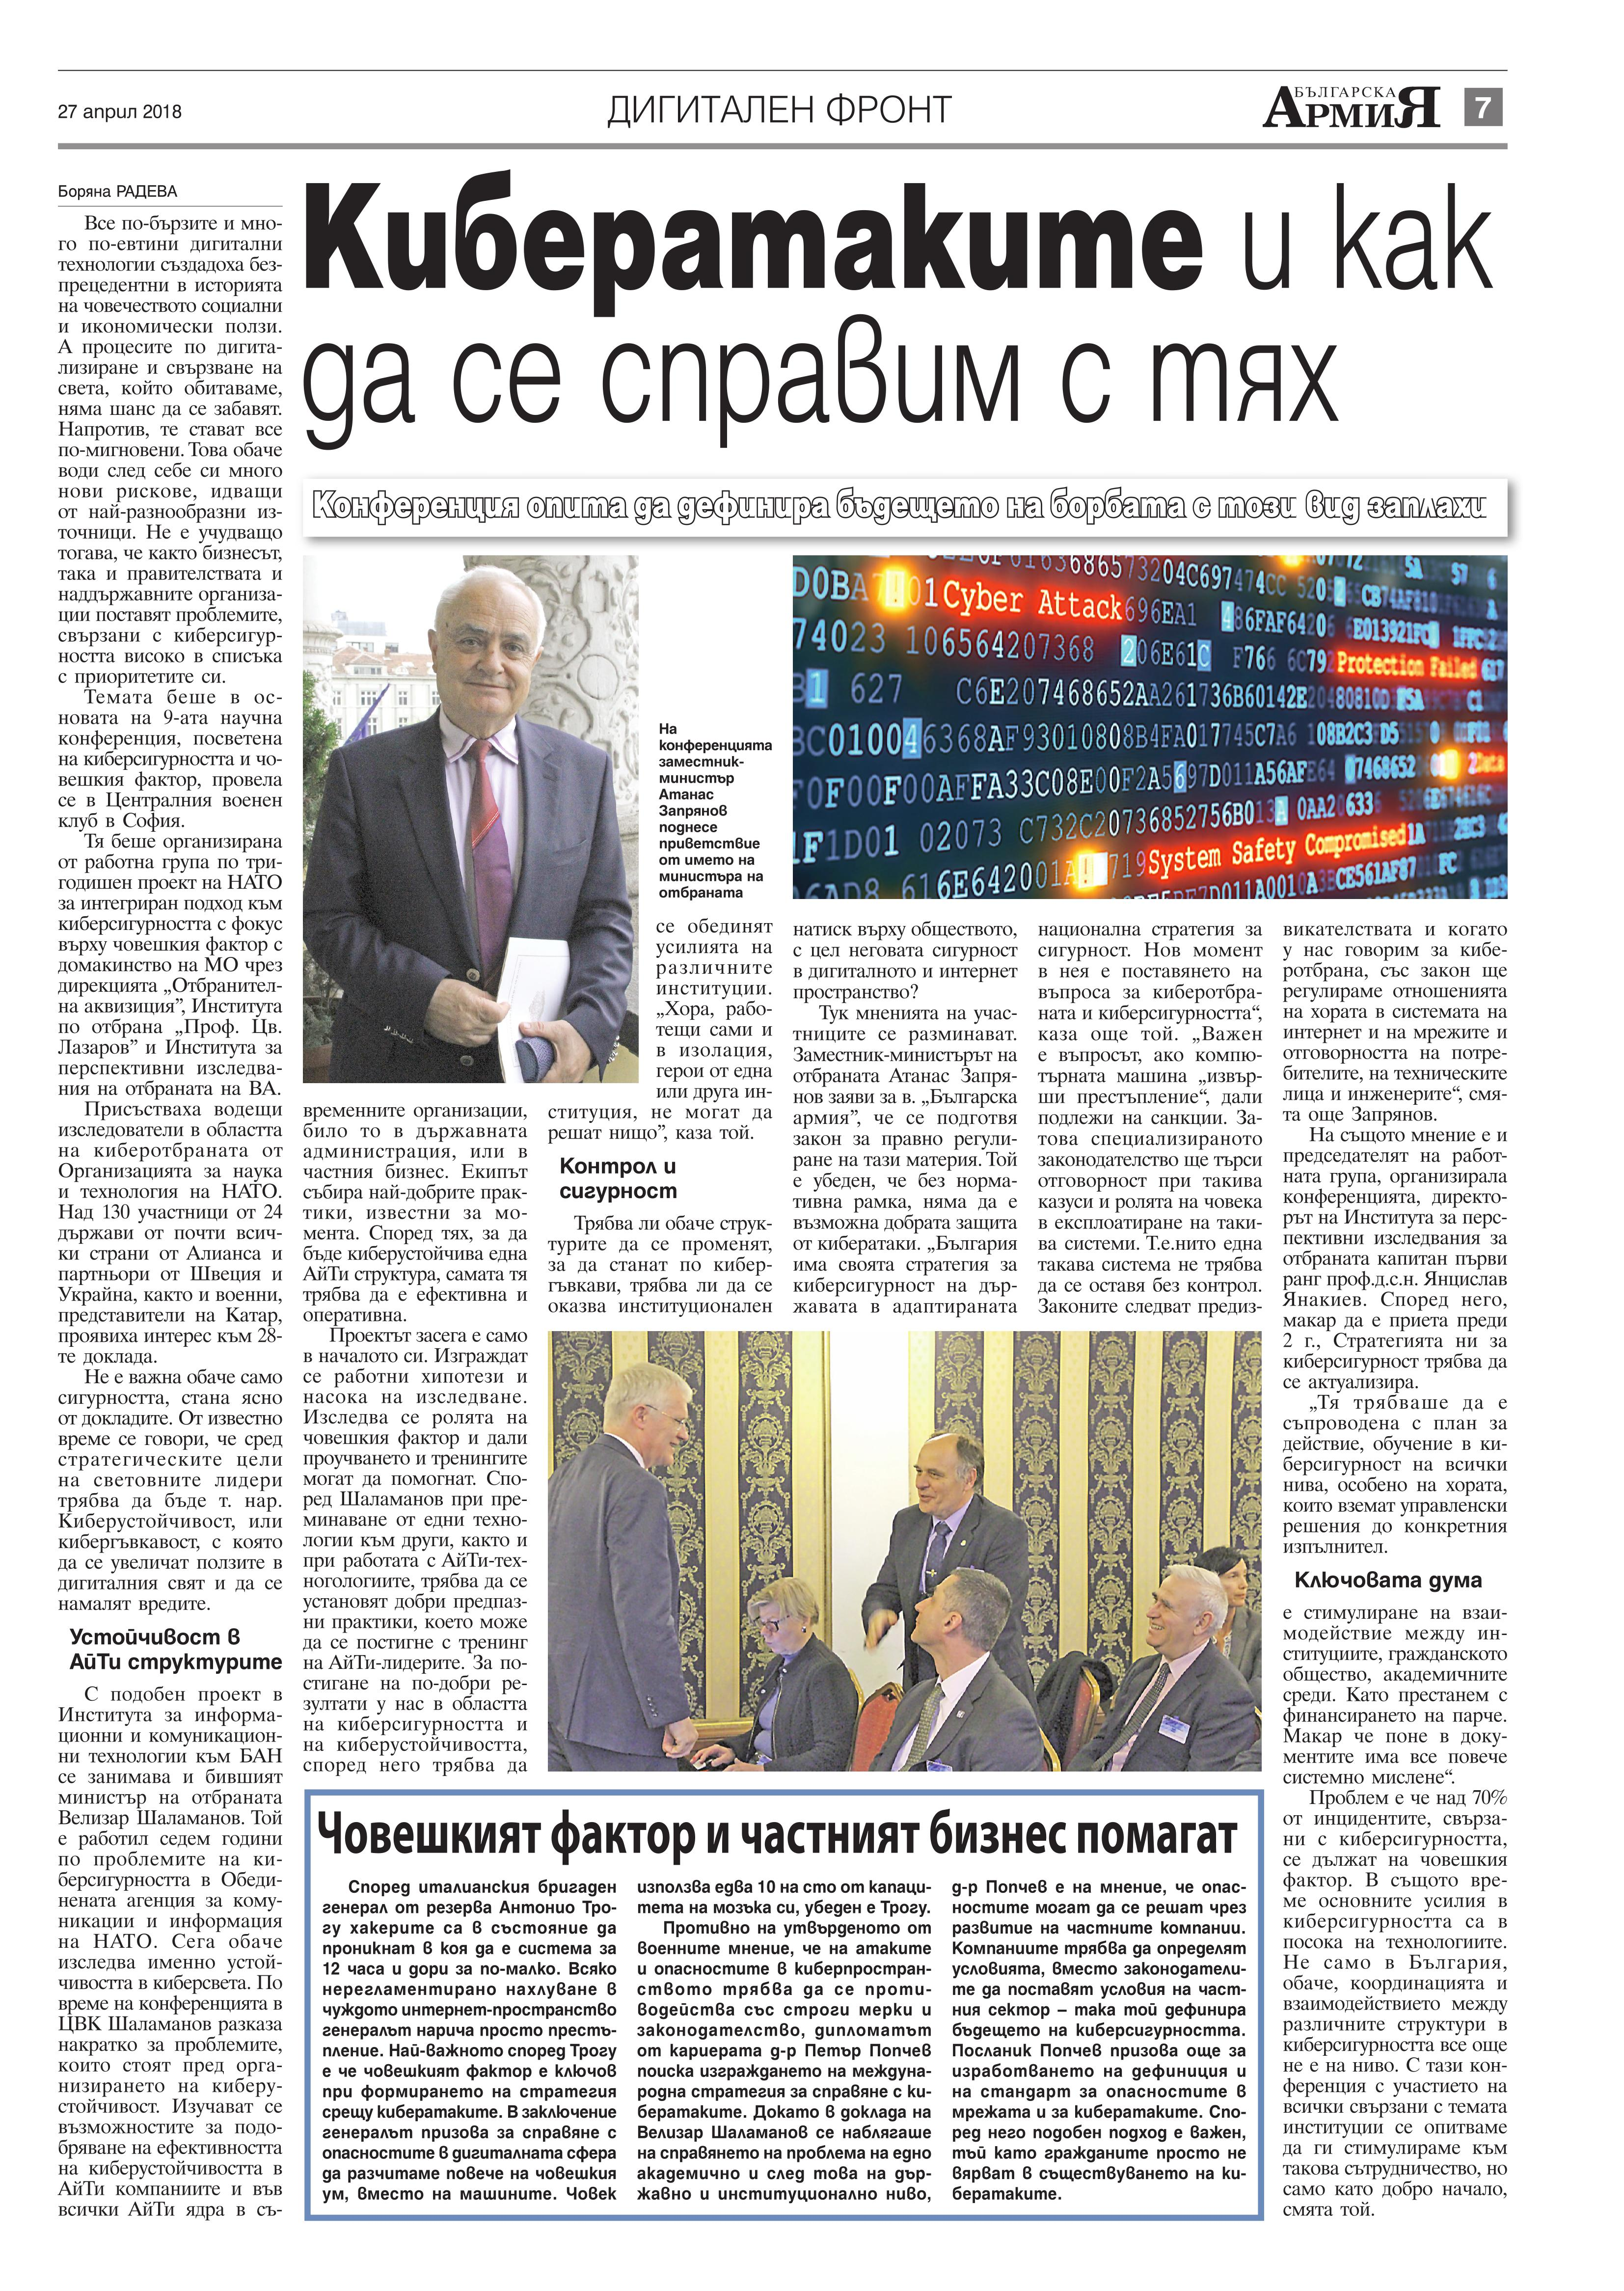 http://armymedia.bg/wp-content/uploads/2015/06/07.page1-Copy-2.jpg